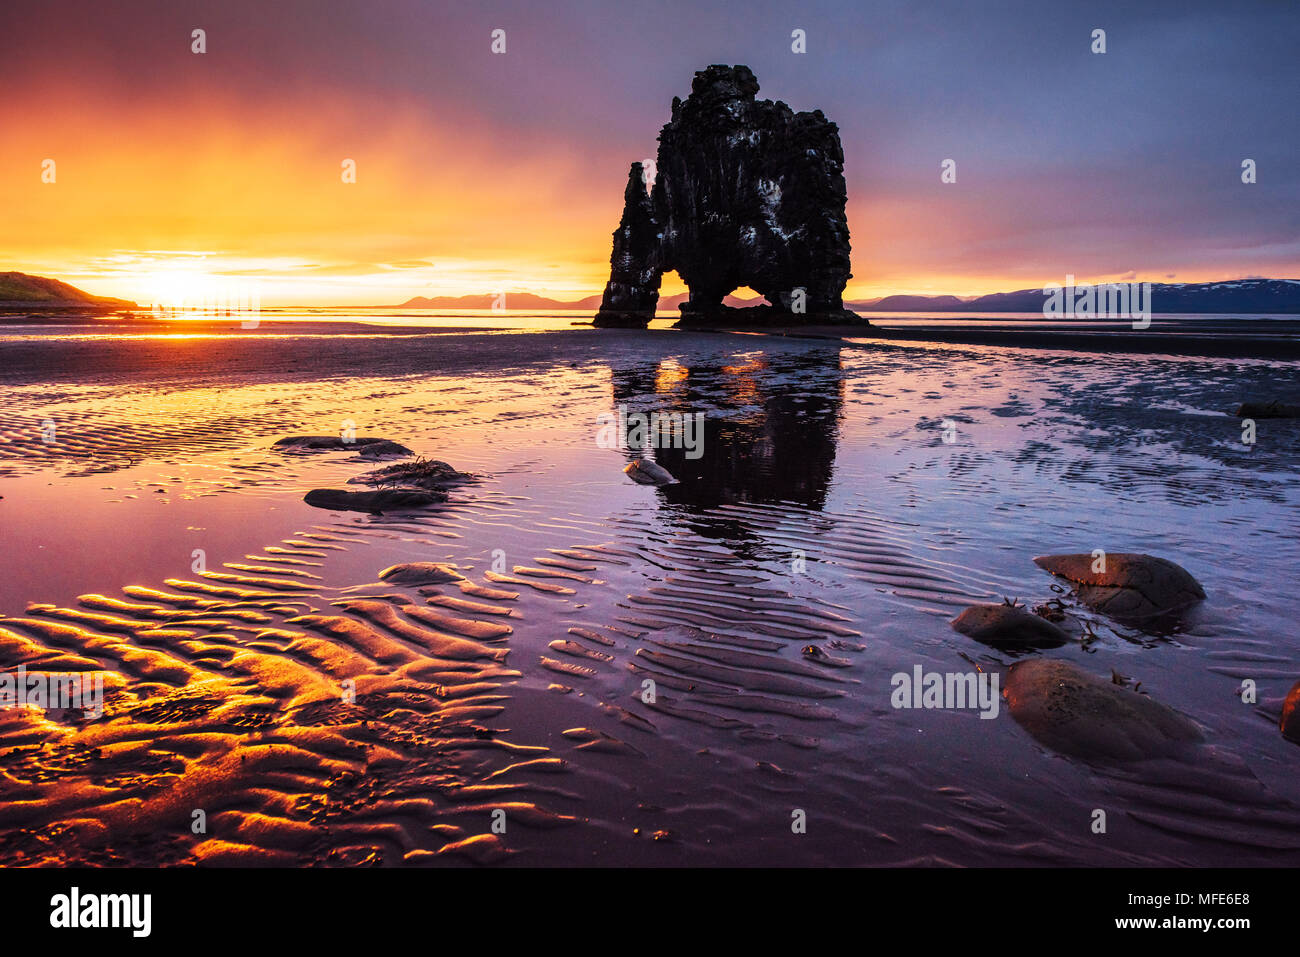 Is a spectacular rock in the sea on the Northern coast of Iceland. Legends say it is a petrified troll. On this photo Hvitserkur reflects in the sea water after the midnight sunset - Stock Image